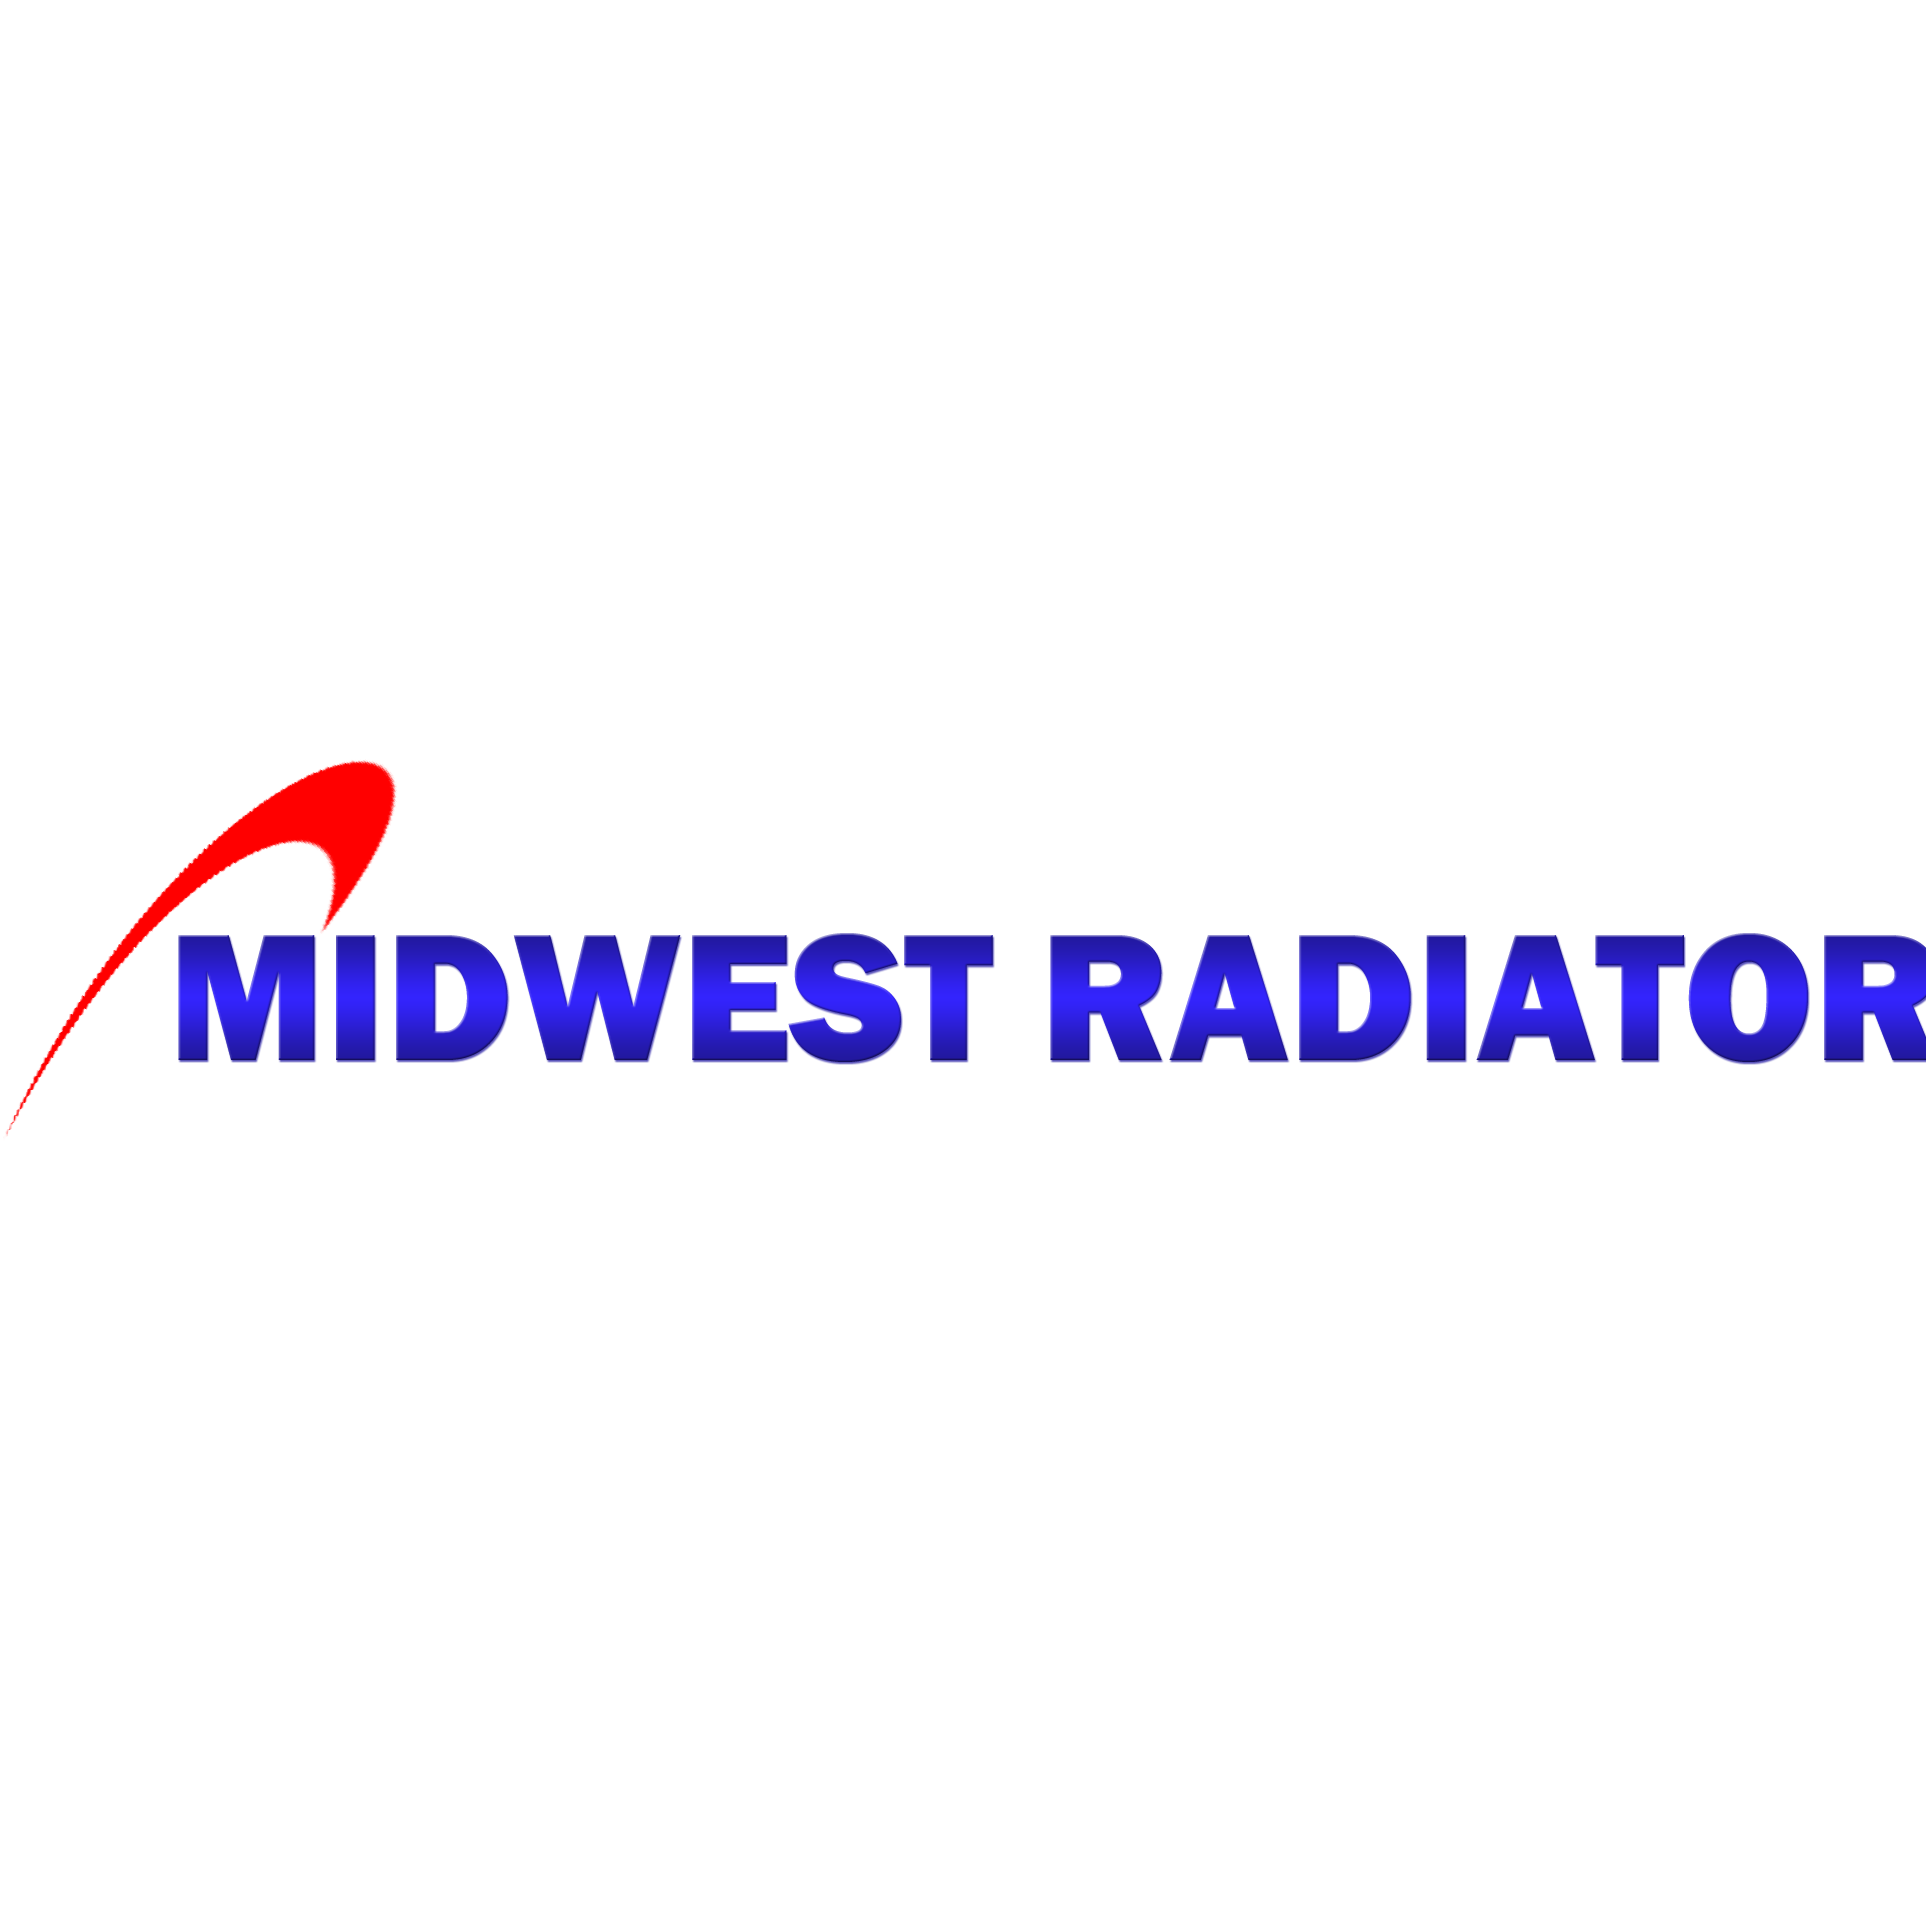 Midwest Radiator - Omaha, NE - Farms, Orchards & Ranches